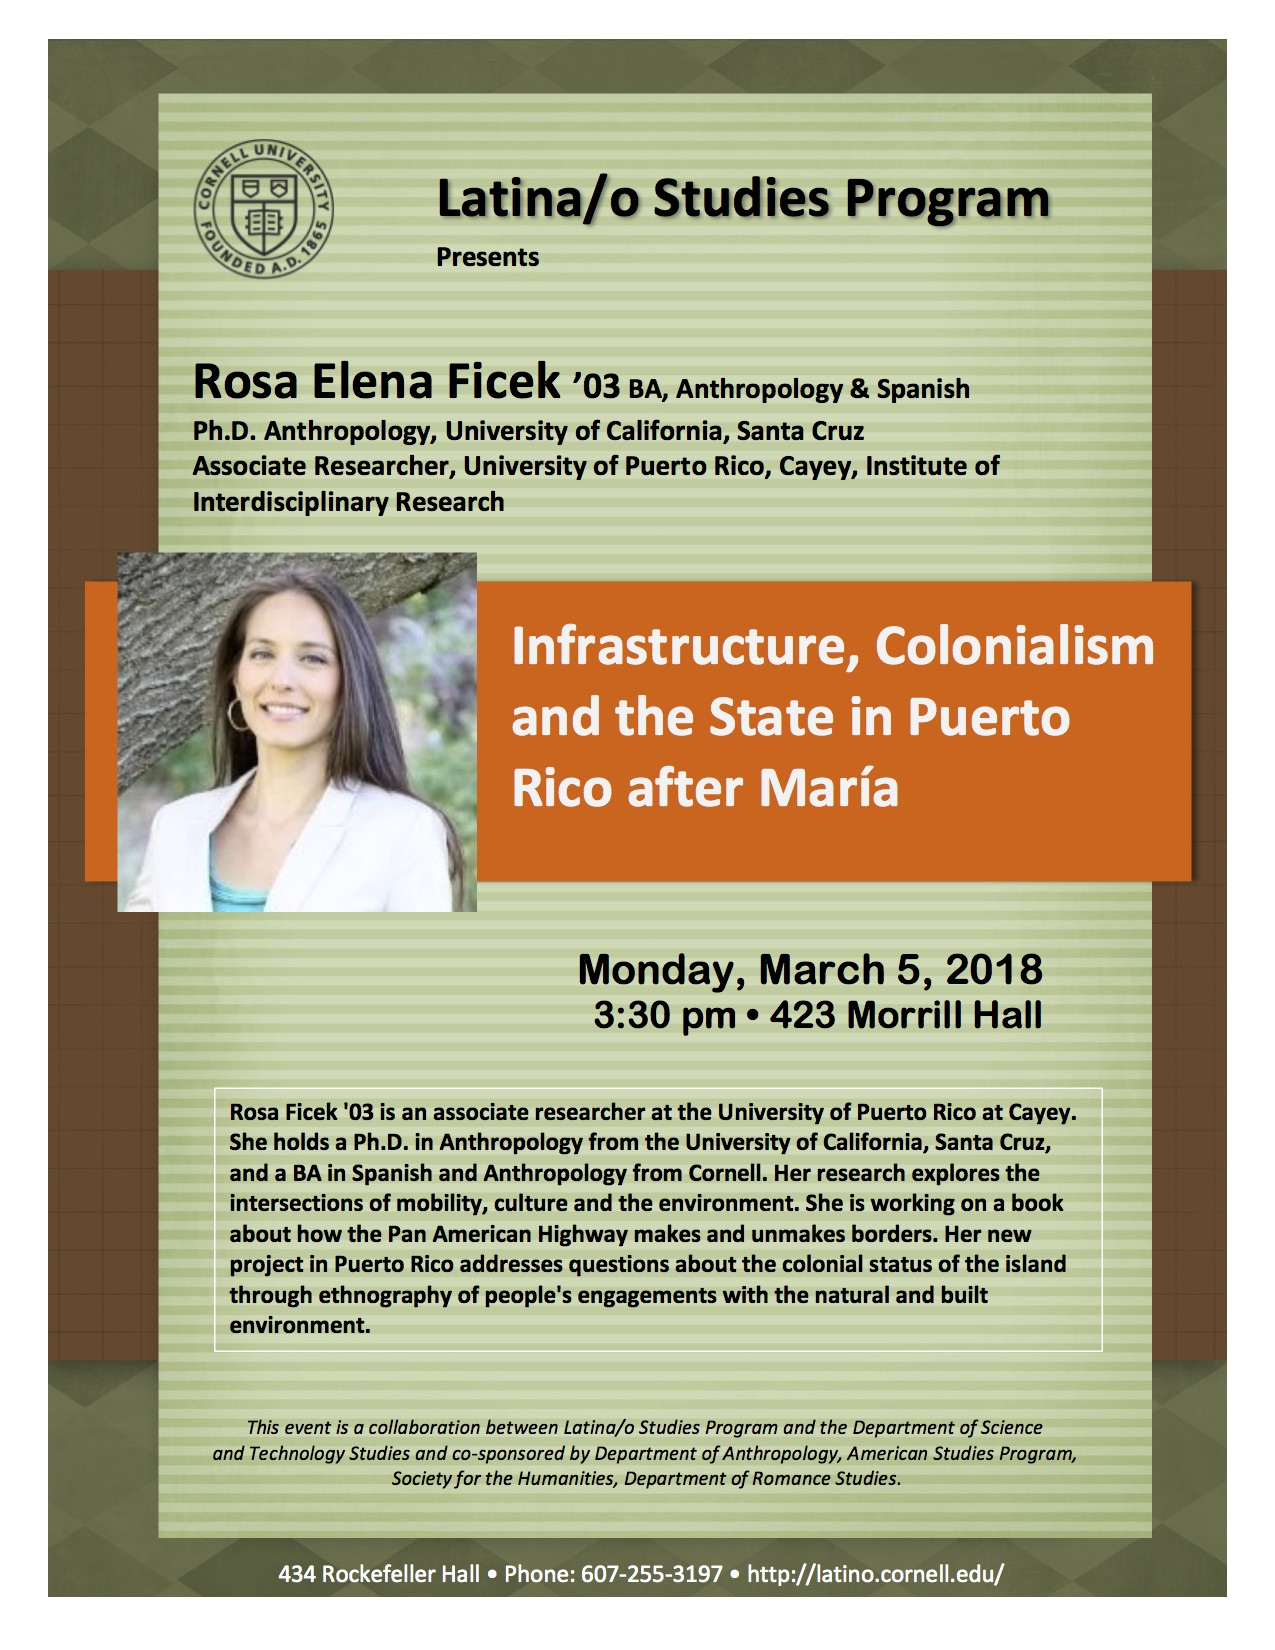 Rosa Ficek '03, Infrastructure, Colonialism and the State in Puerto Rico after María